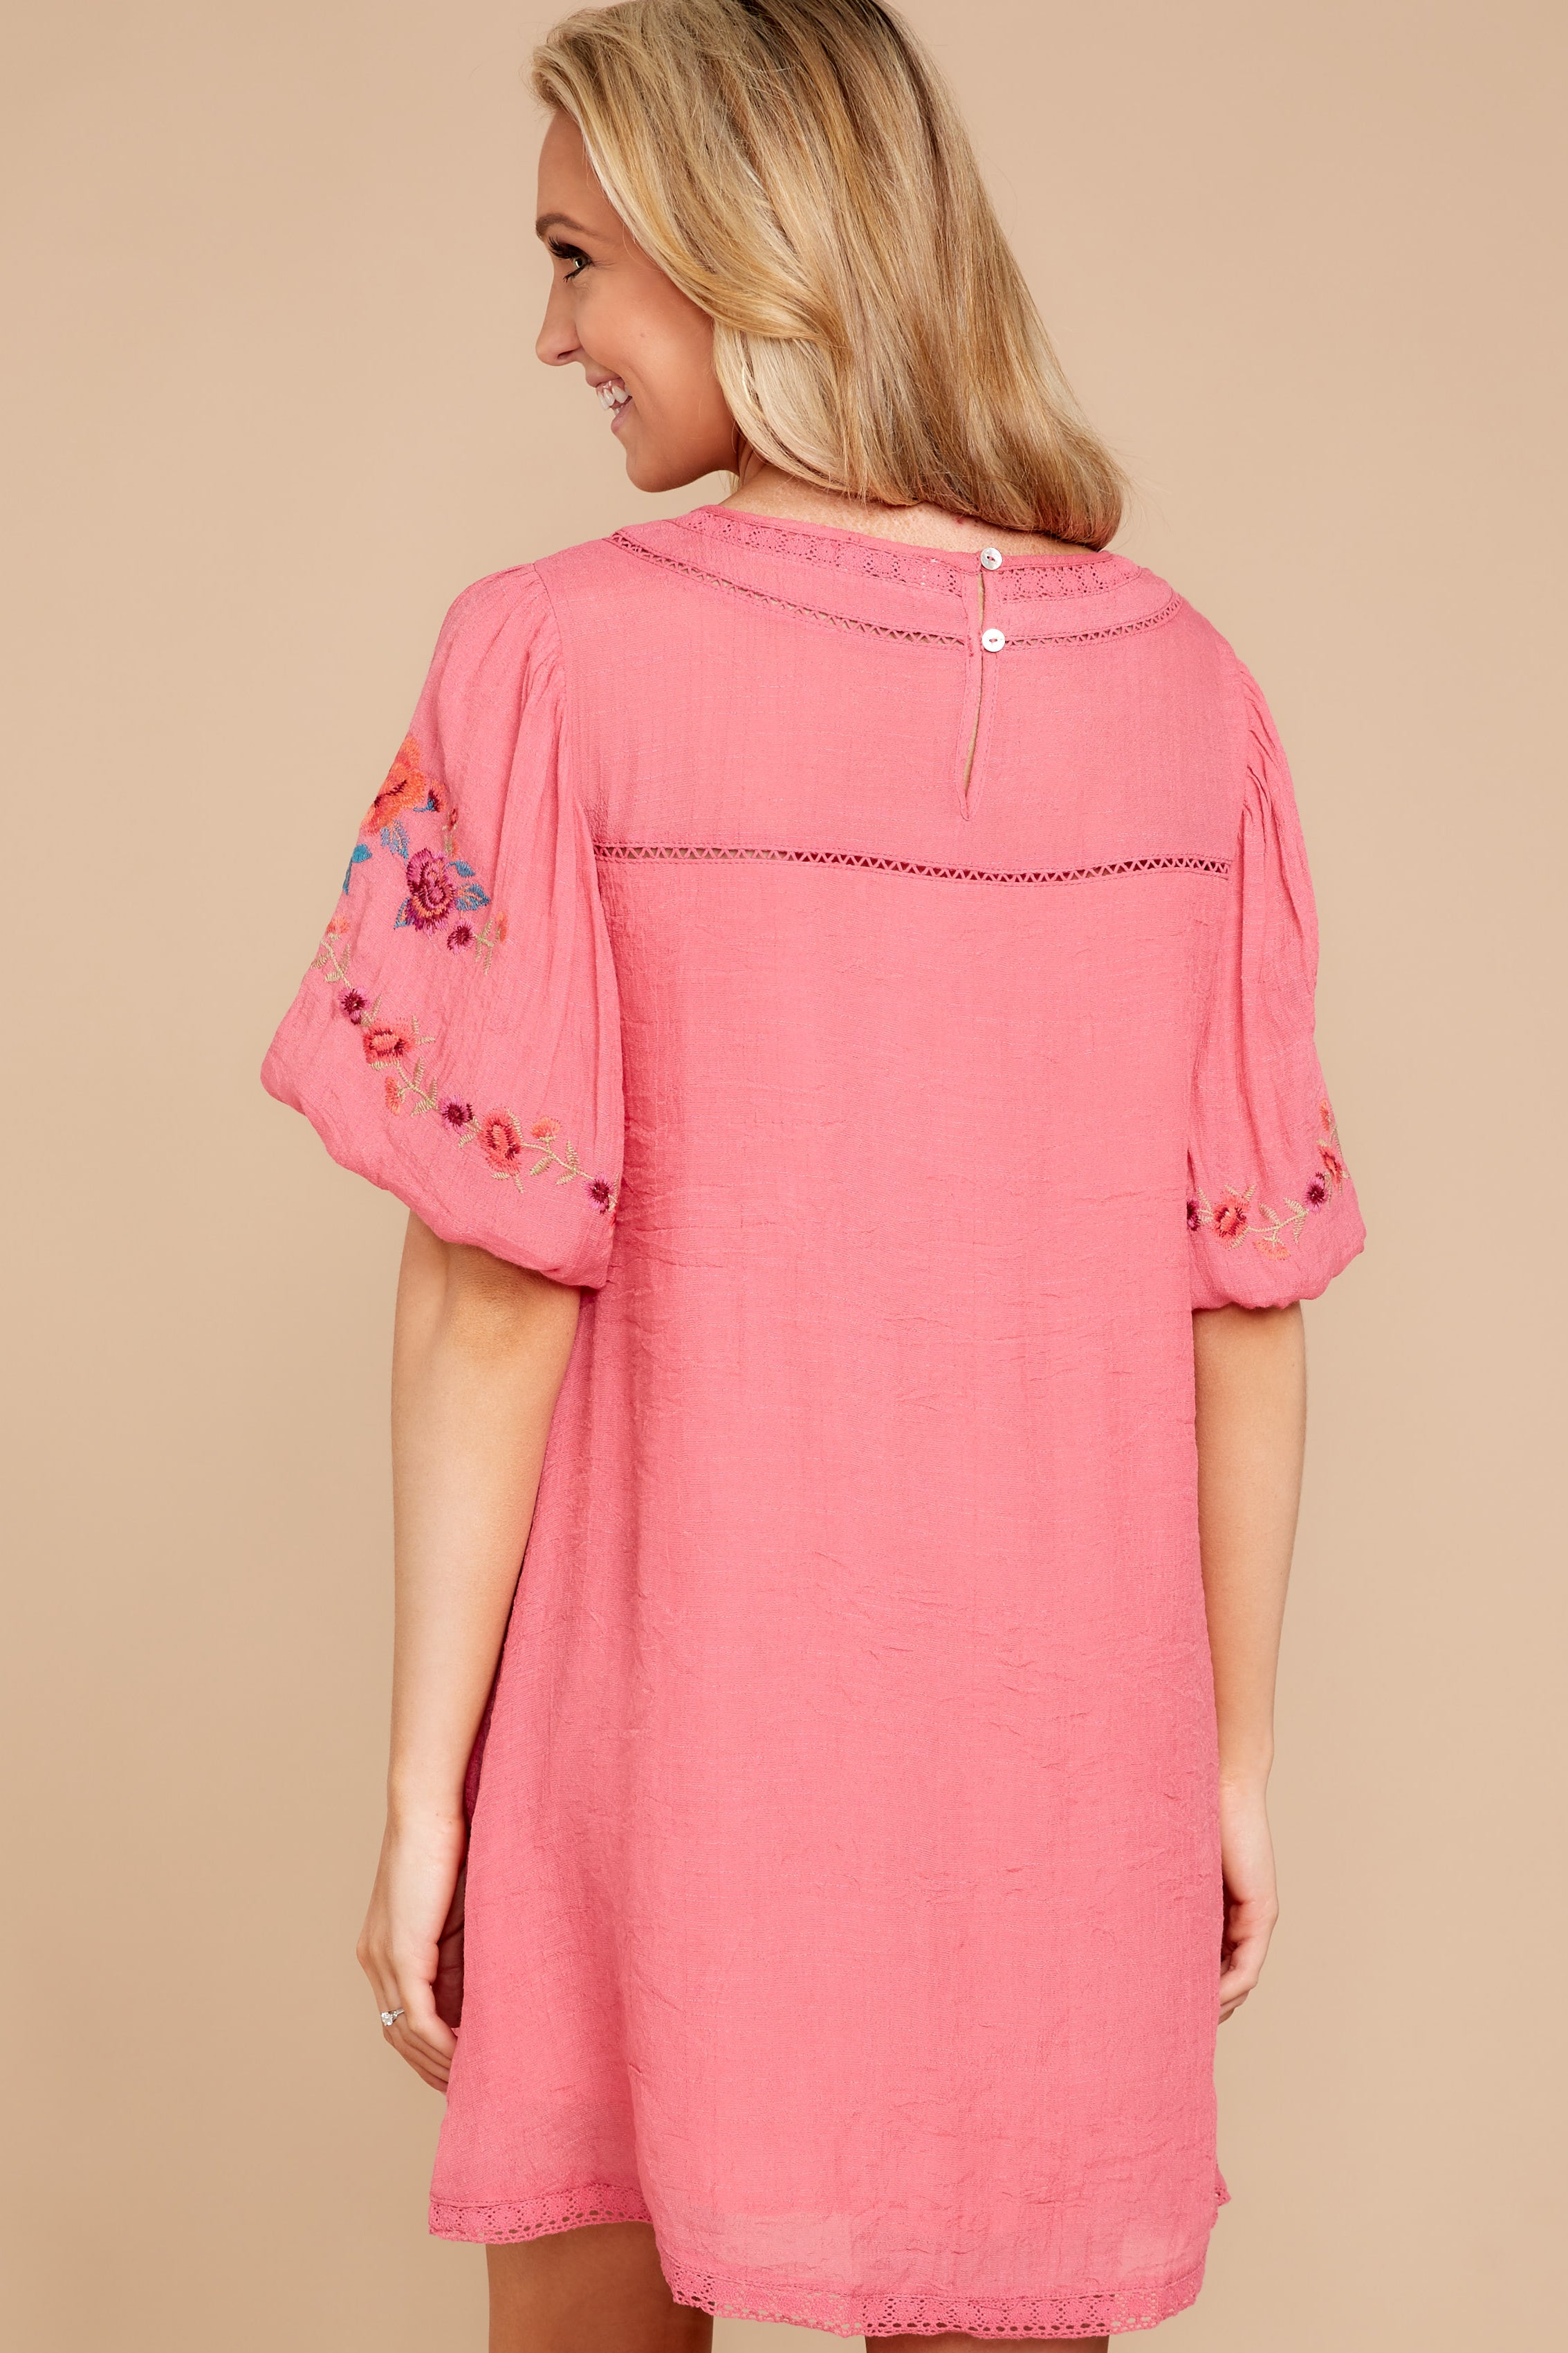 6 Through The Phase Pink Embroidered Dress at reddressboutique.com